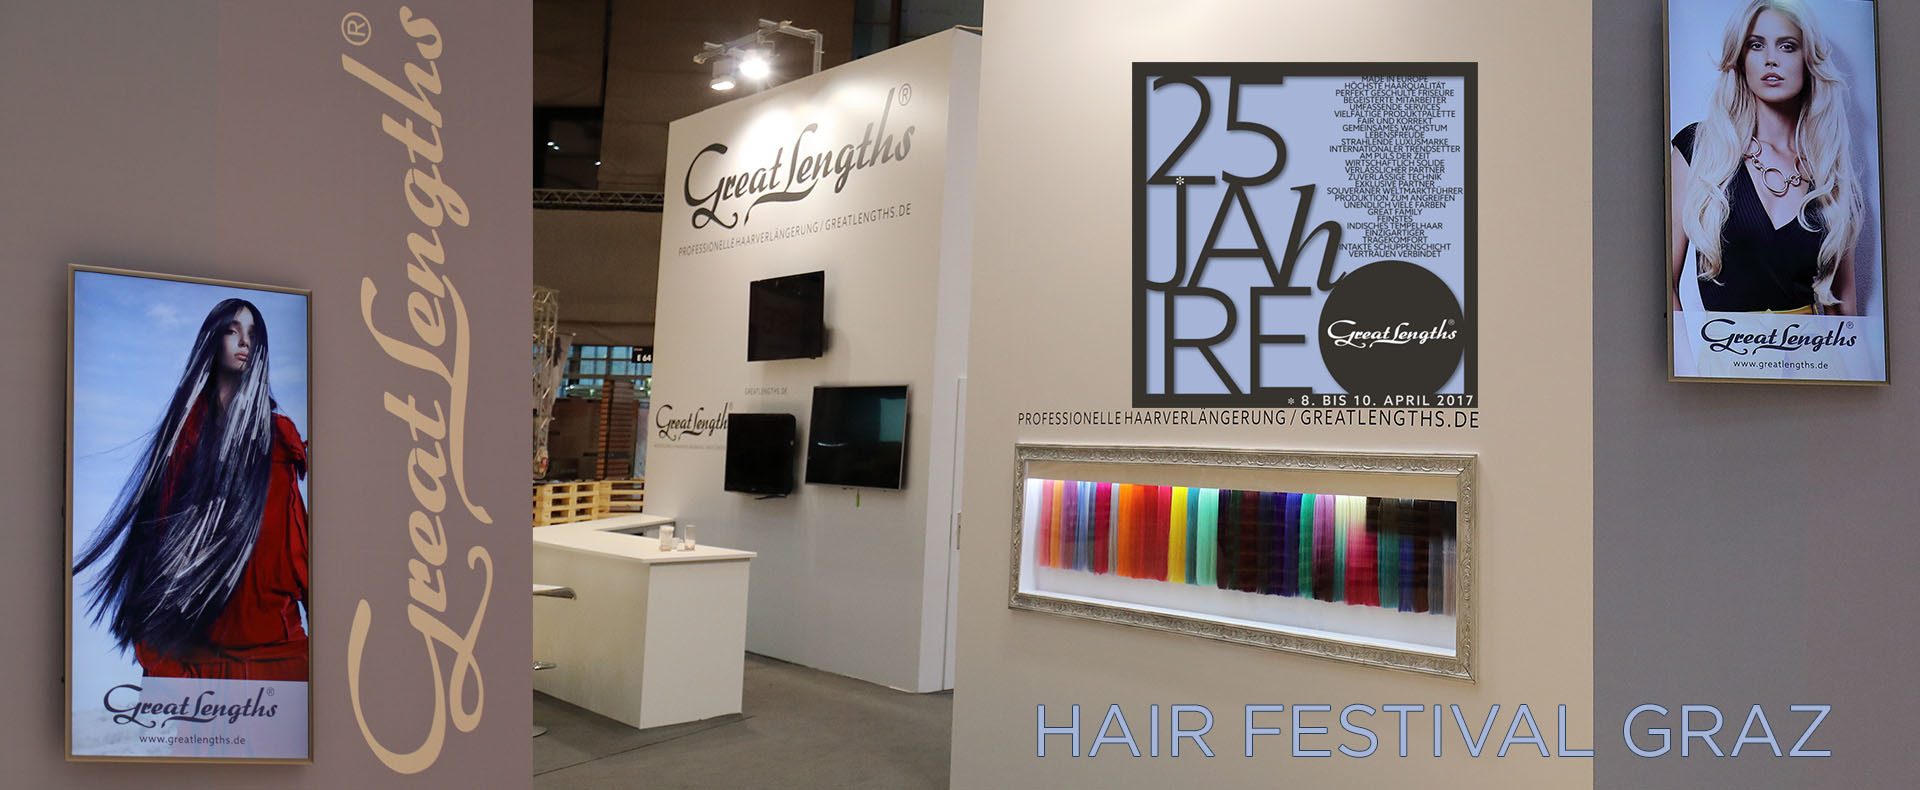 Das HAIR Festival Graz: Der Branchentreff der neuen Art (© Great Lengths)